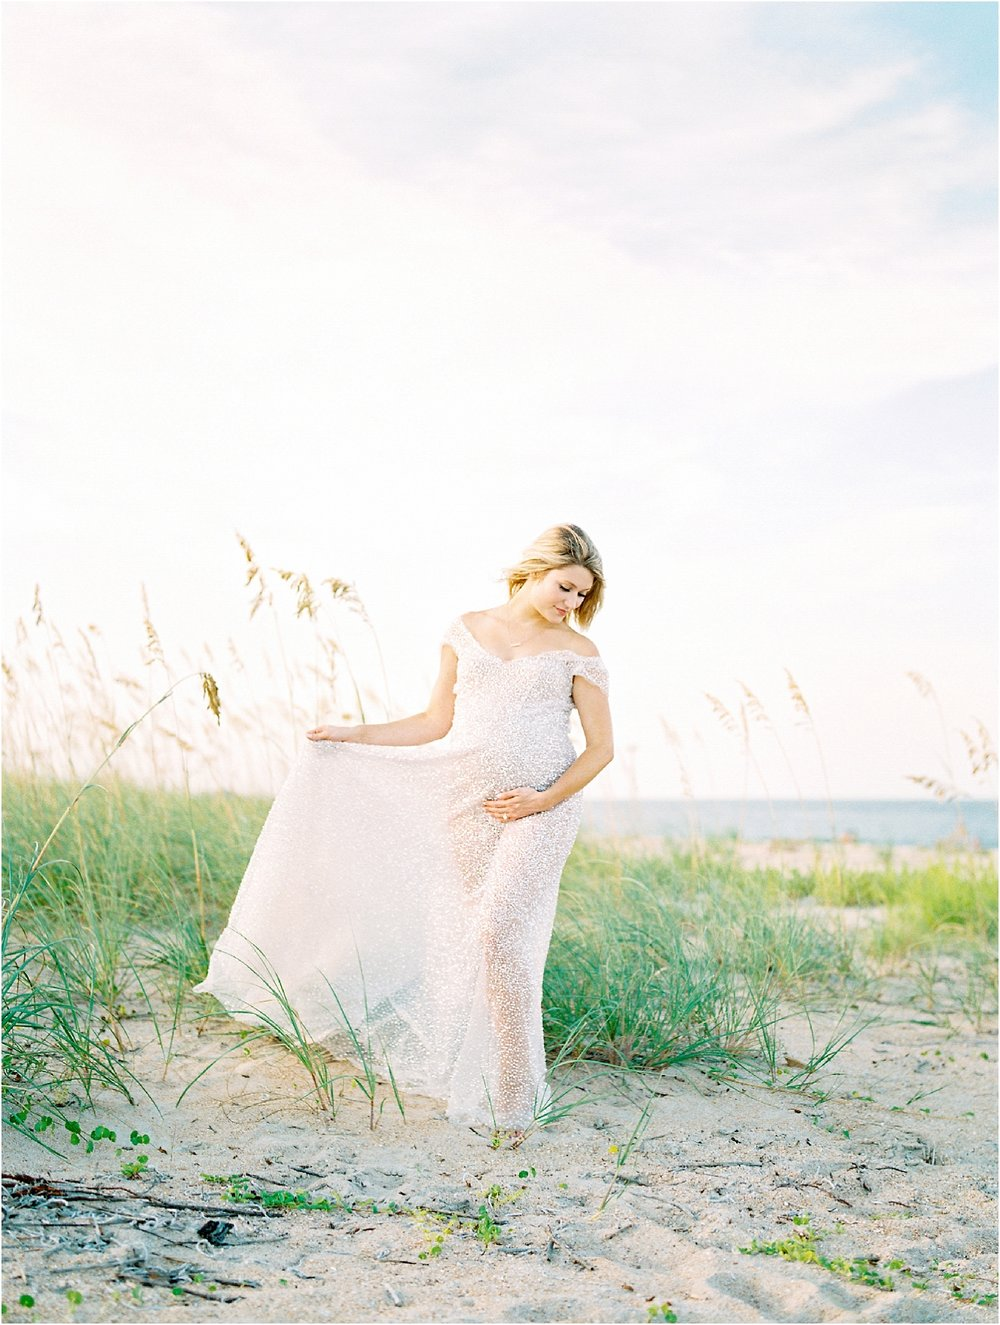 Lisa Silva Photography- Ponte Vedra Beach, St. Augustine and Jacksonville, Florida Fine Art Film Wedding and Boudoir Photography- Lifestyle Maternity Session_0017.jpg